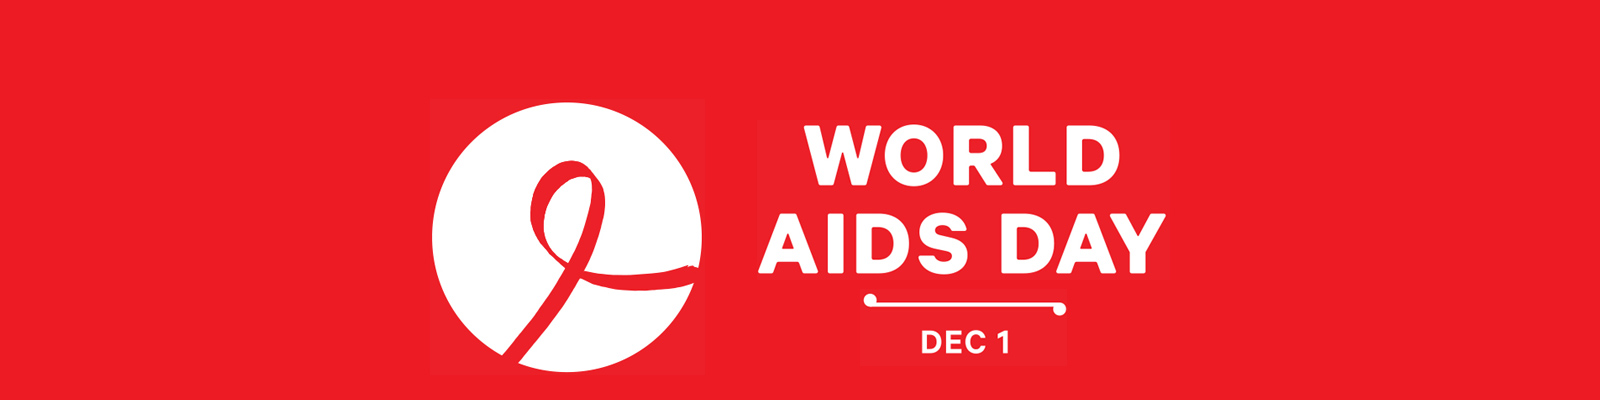 World AIDS Day Photo Gallery for free download